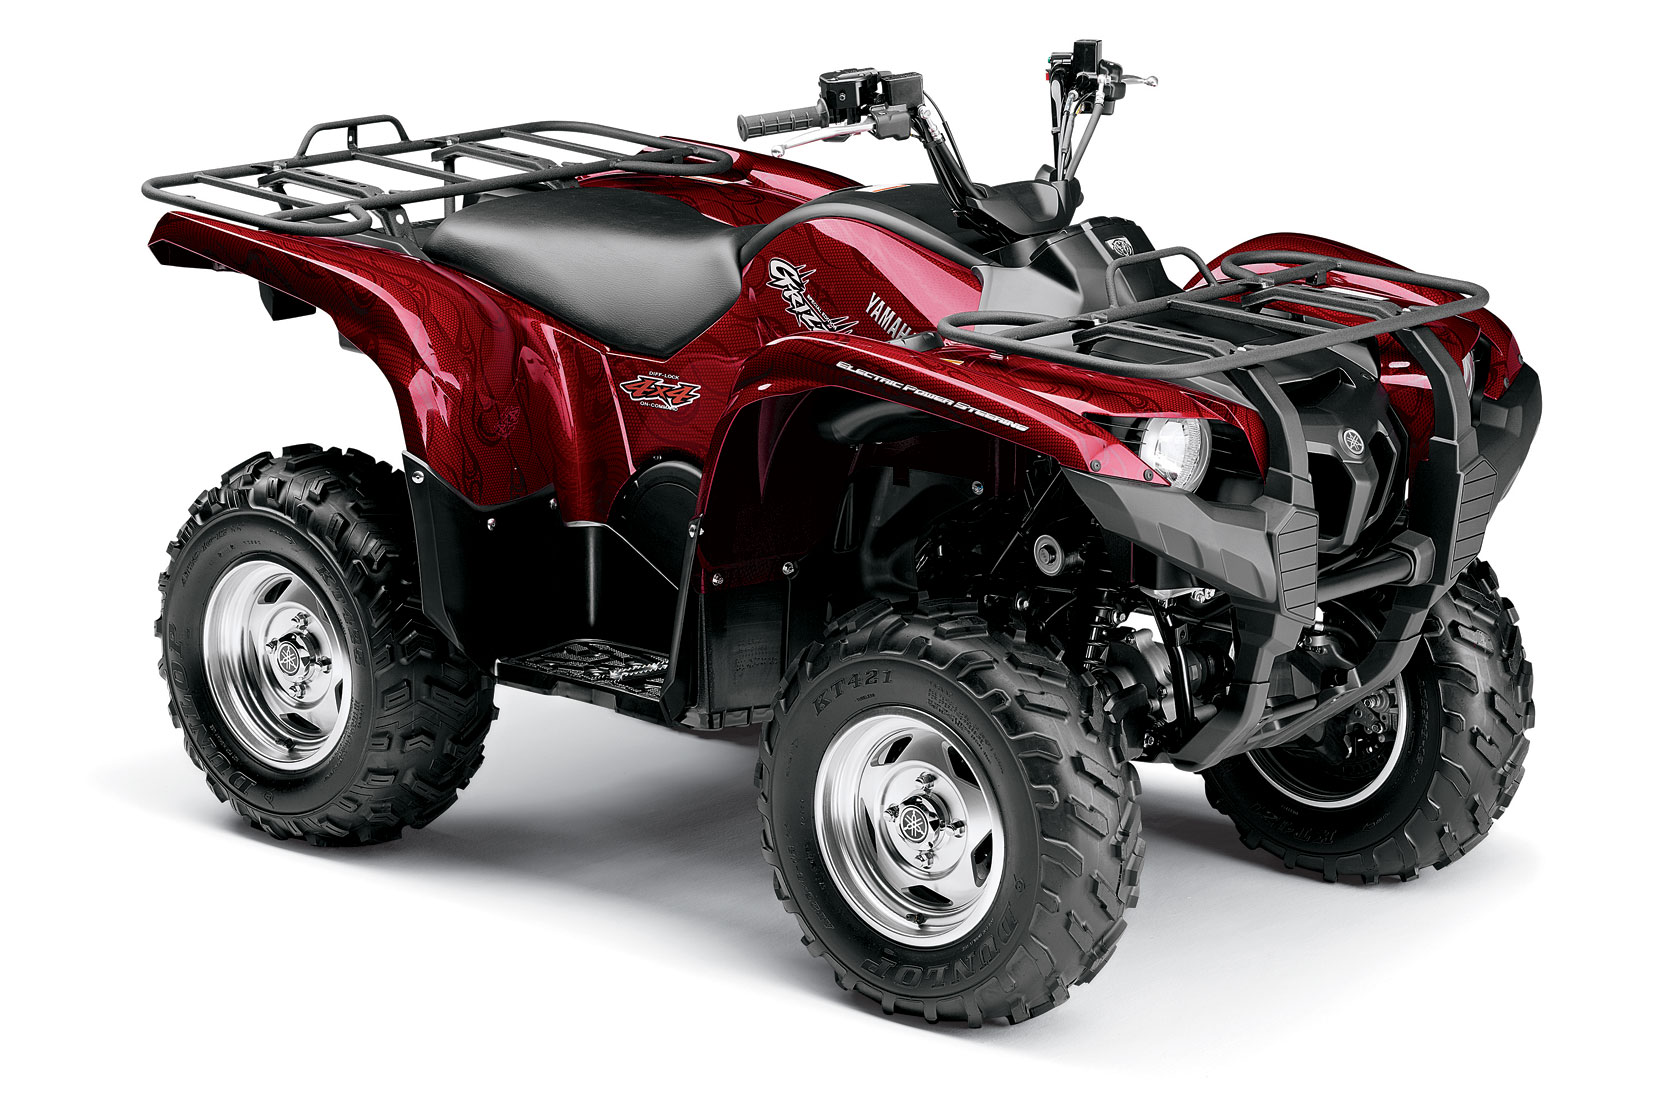 Yamaha grizzly 550 fi eps special edition specs 2008 for Yamaha clp 550 specifications